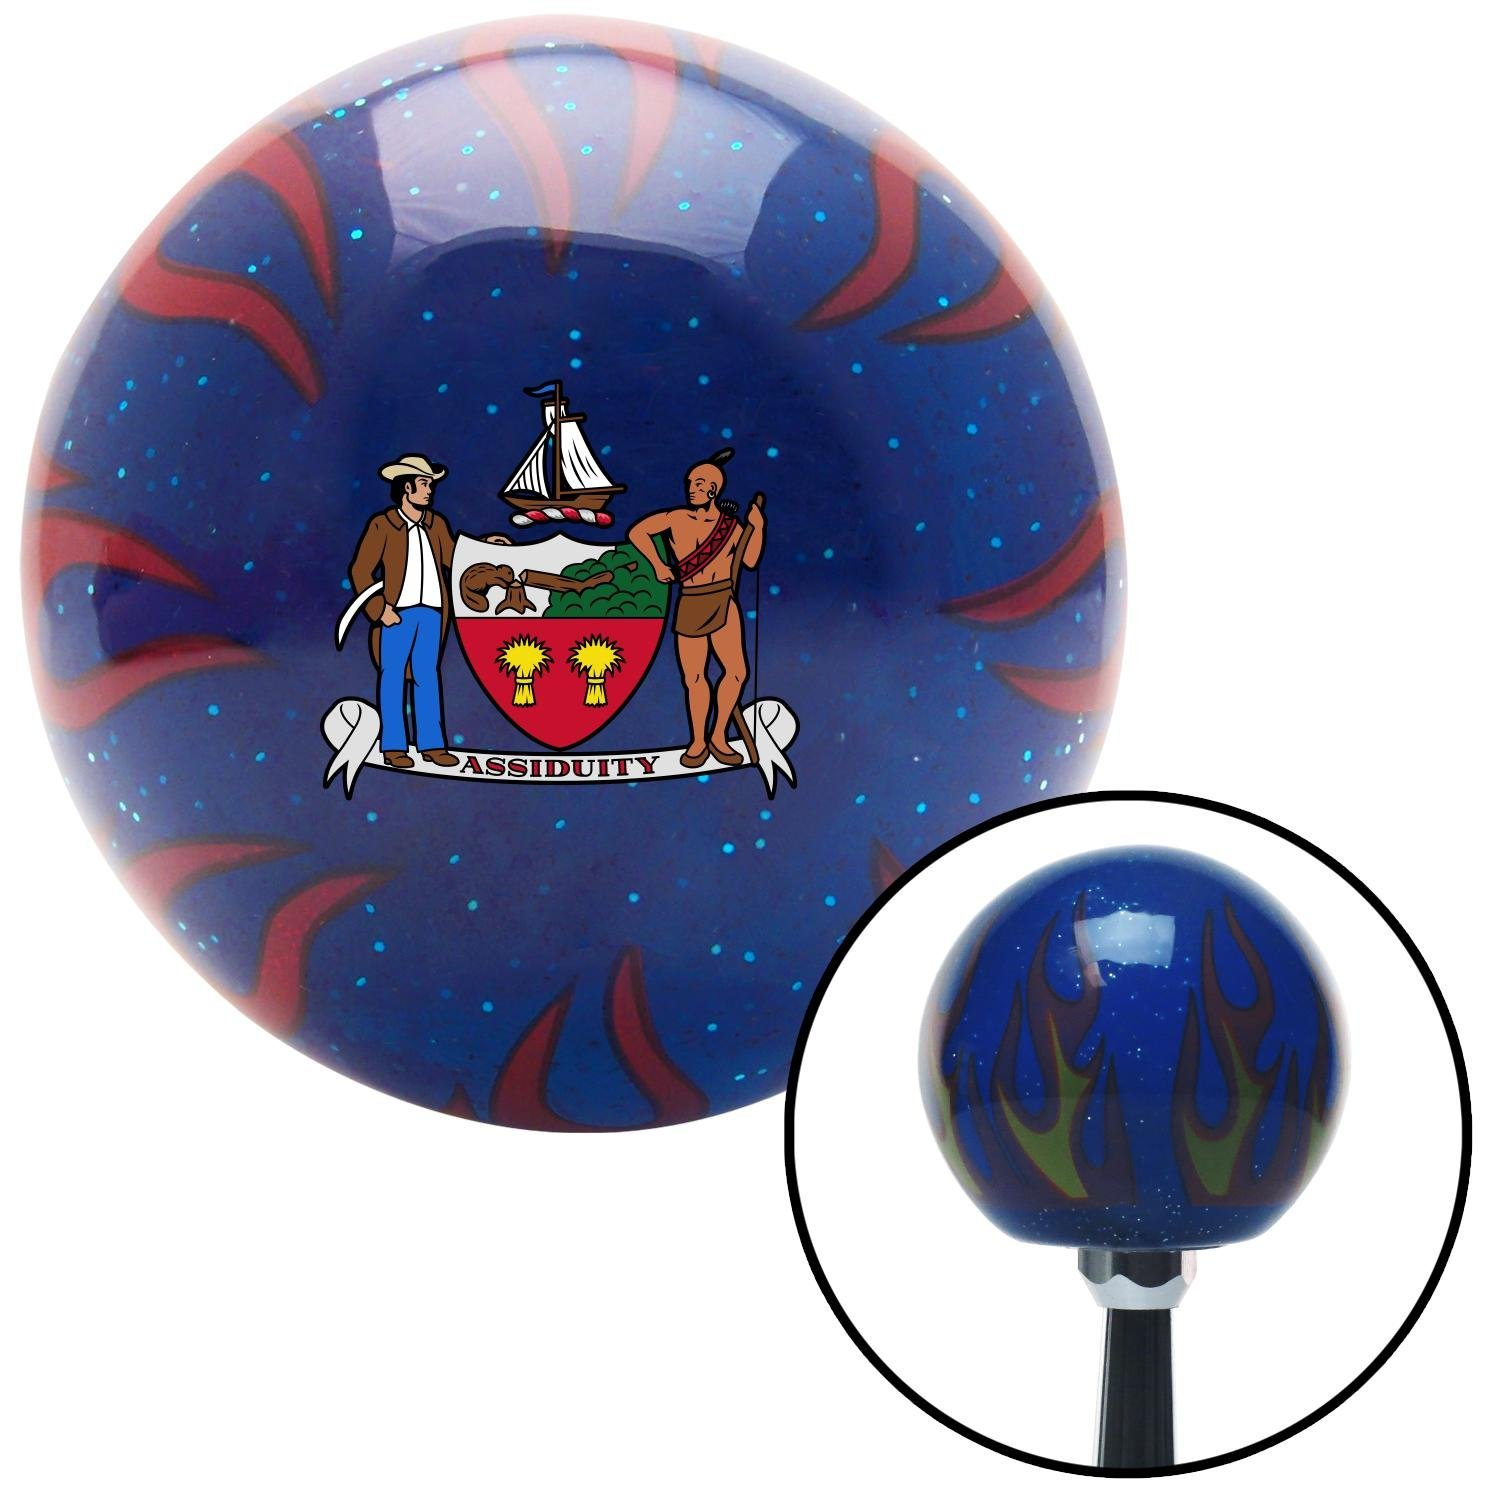 Assiduity Coat of Arms American Shifter 251783 Blue Flame Metal Flake Shift Knob with M16 x 1.5 Insert